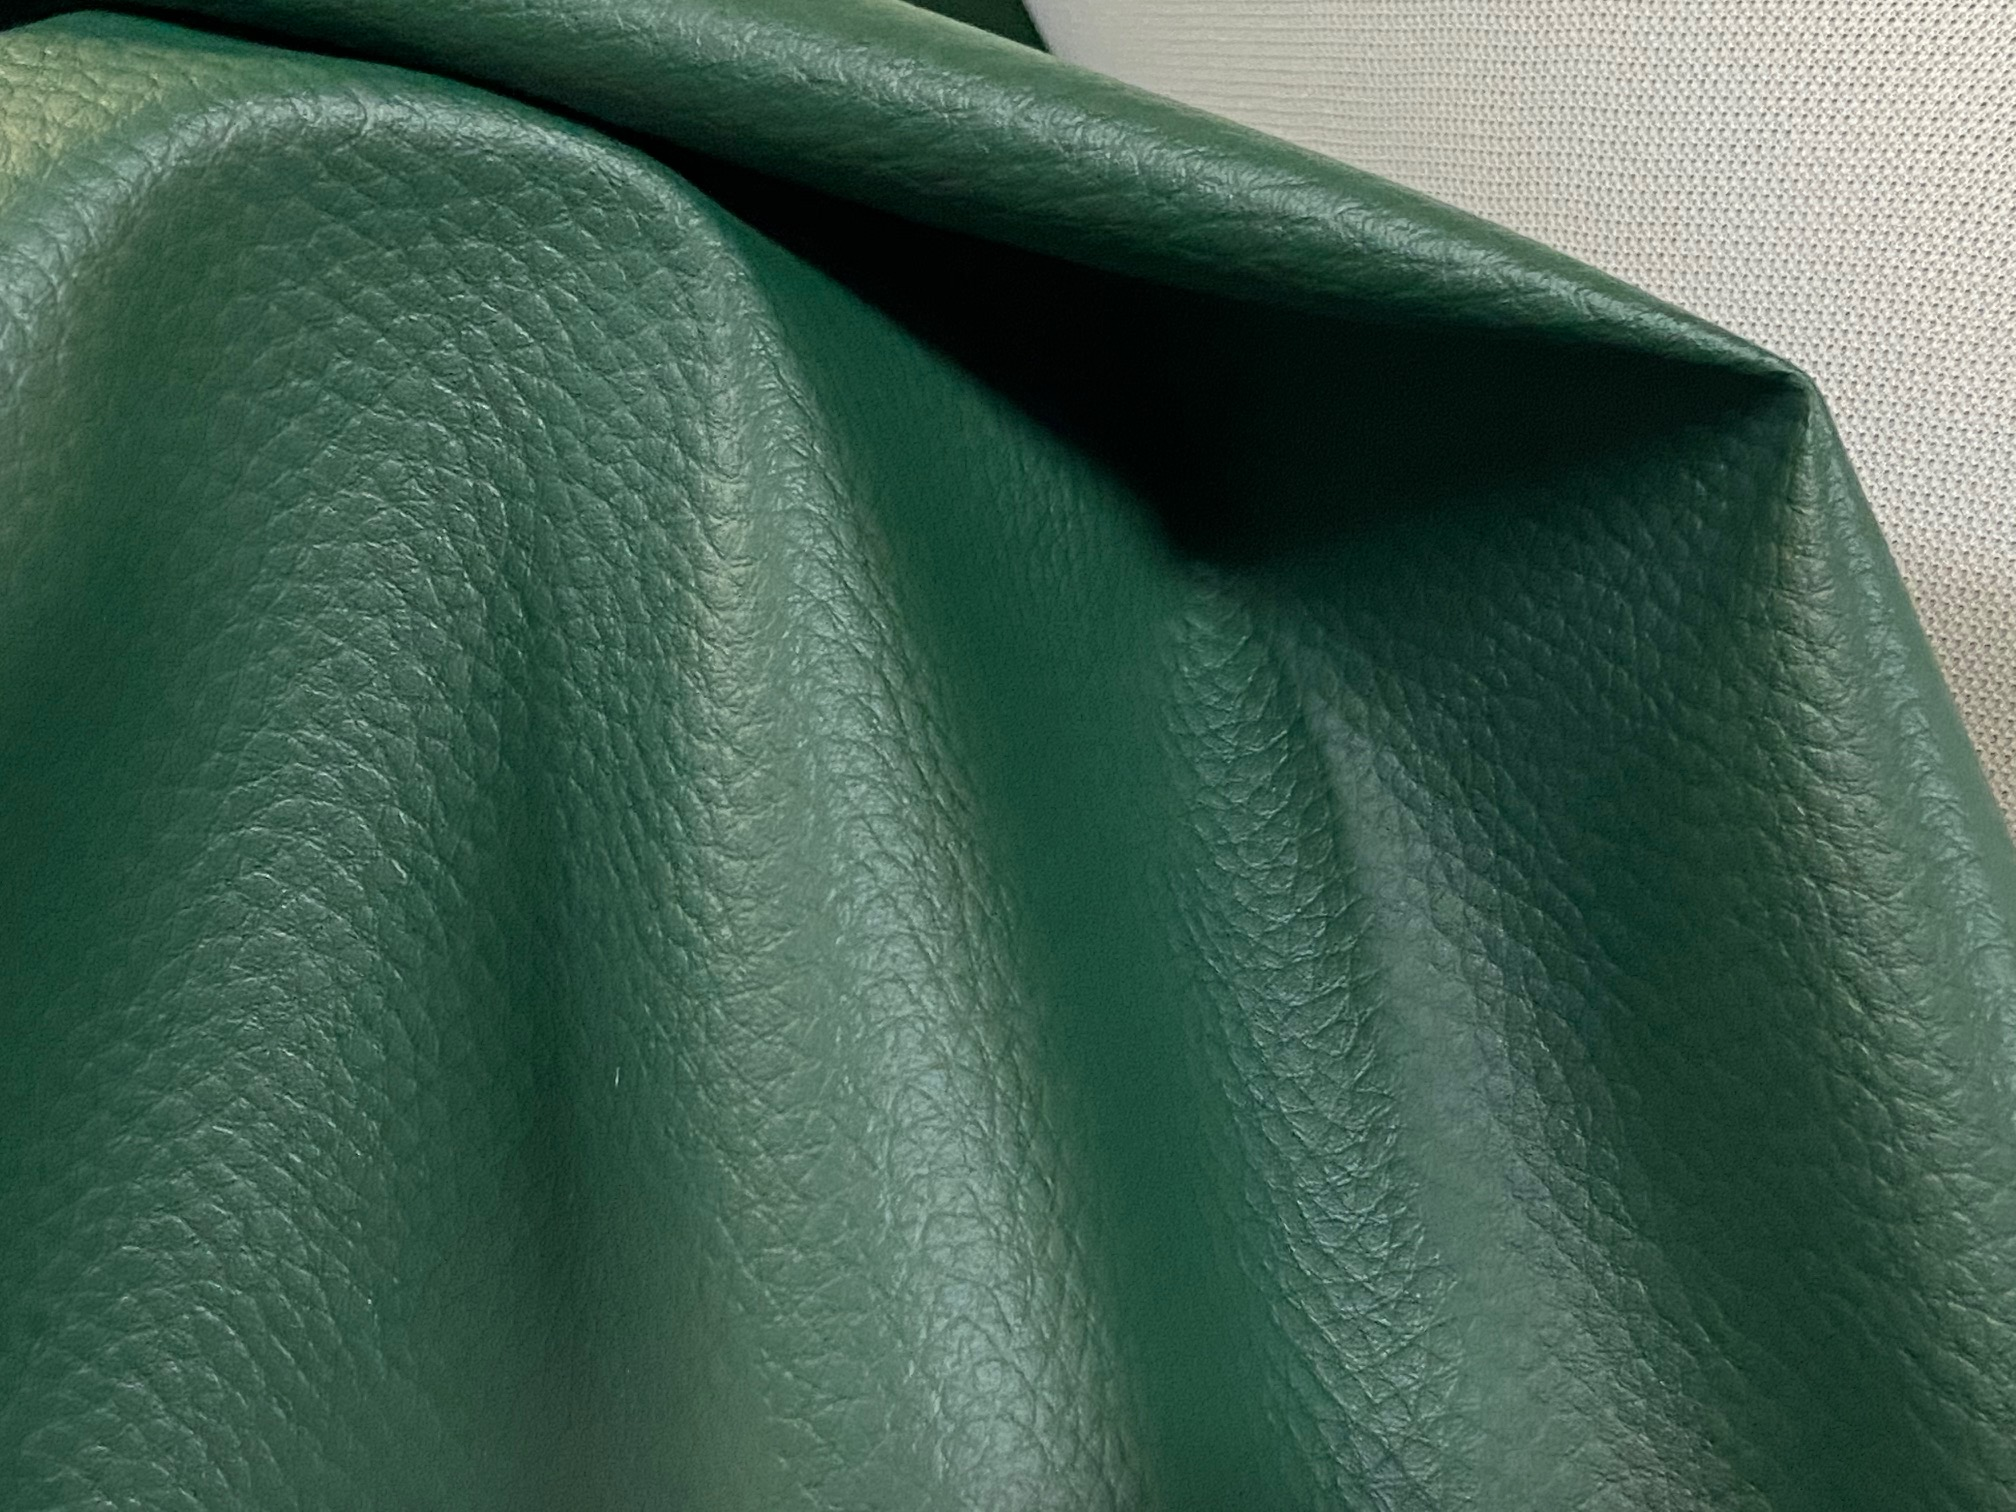 PVC Leather, Budget+, width 145cm, weight 450g/m², Green